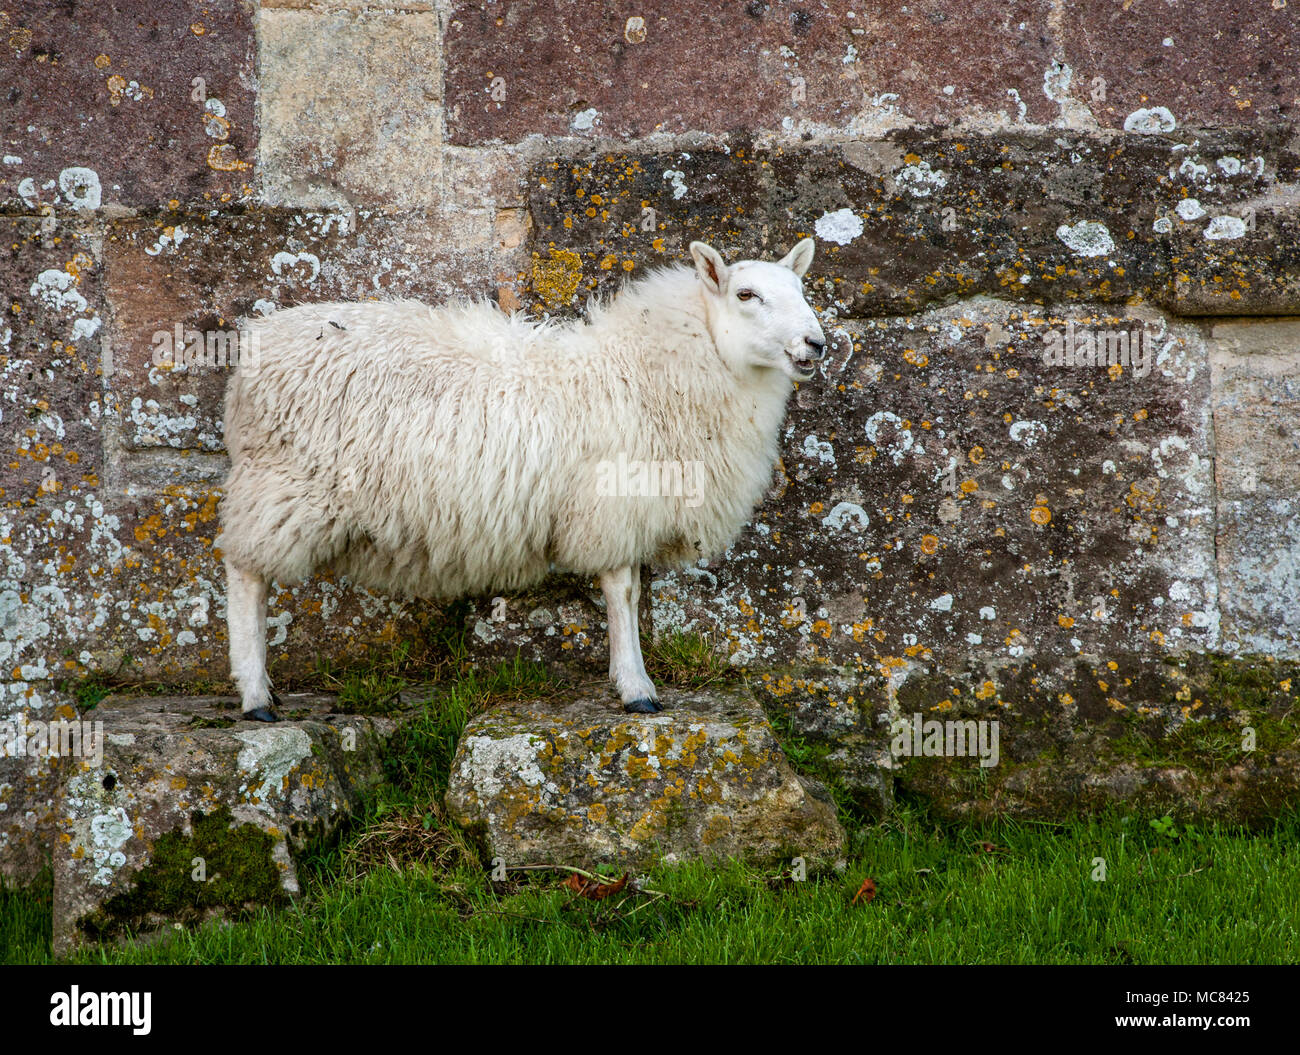 White faced sheep ewe posing on two stone blocks by a stone wall at Woodspring Priory in Somerset UK - Stock Image